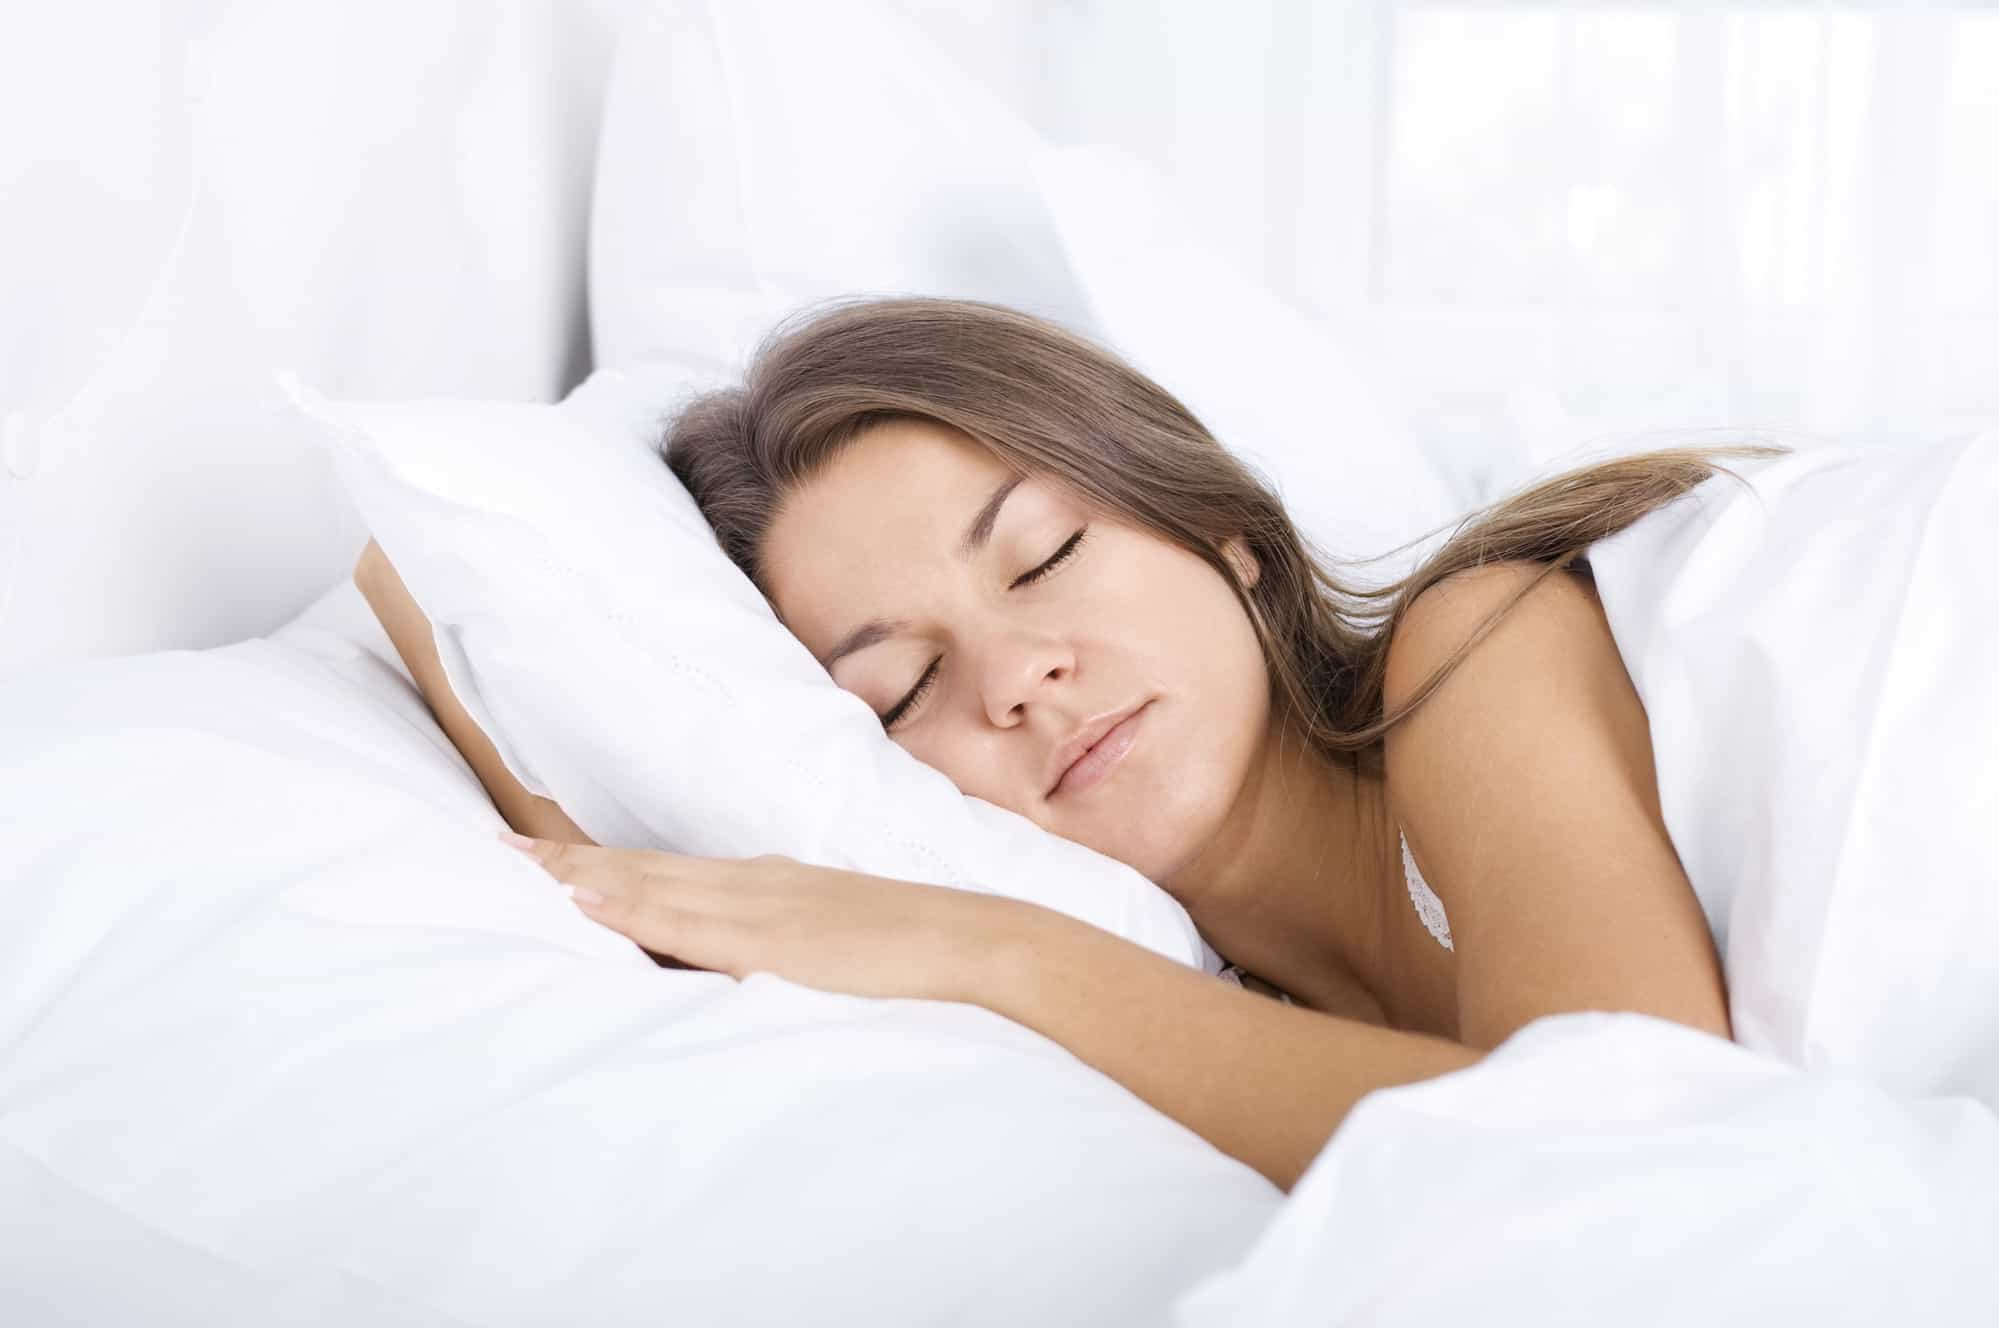 How To Buy The Right Pillow For You